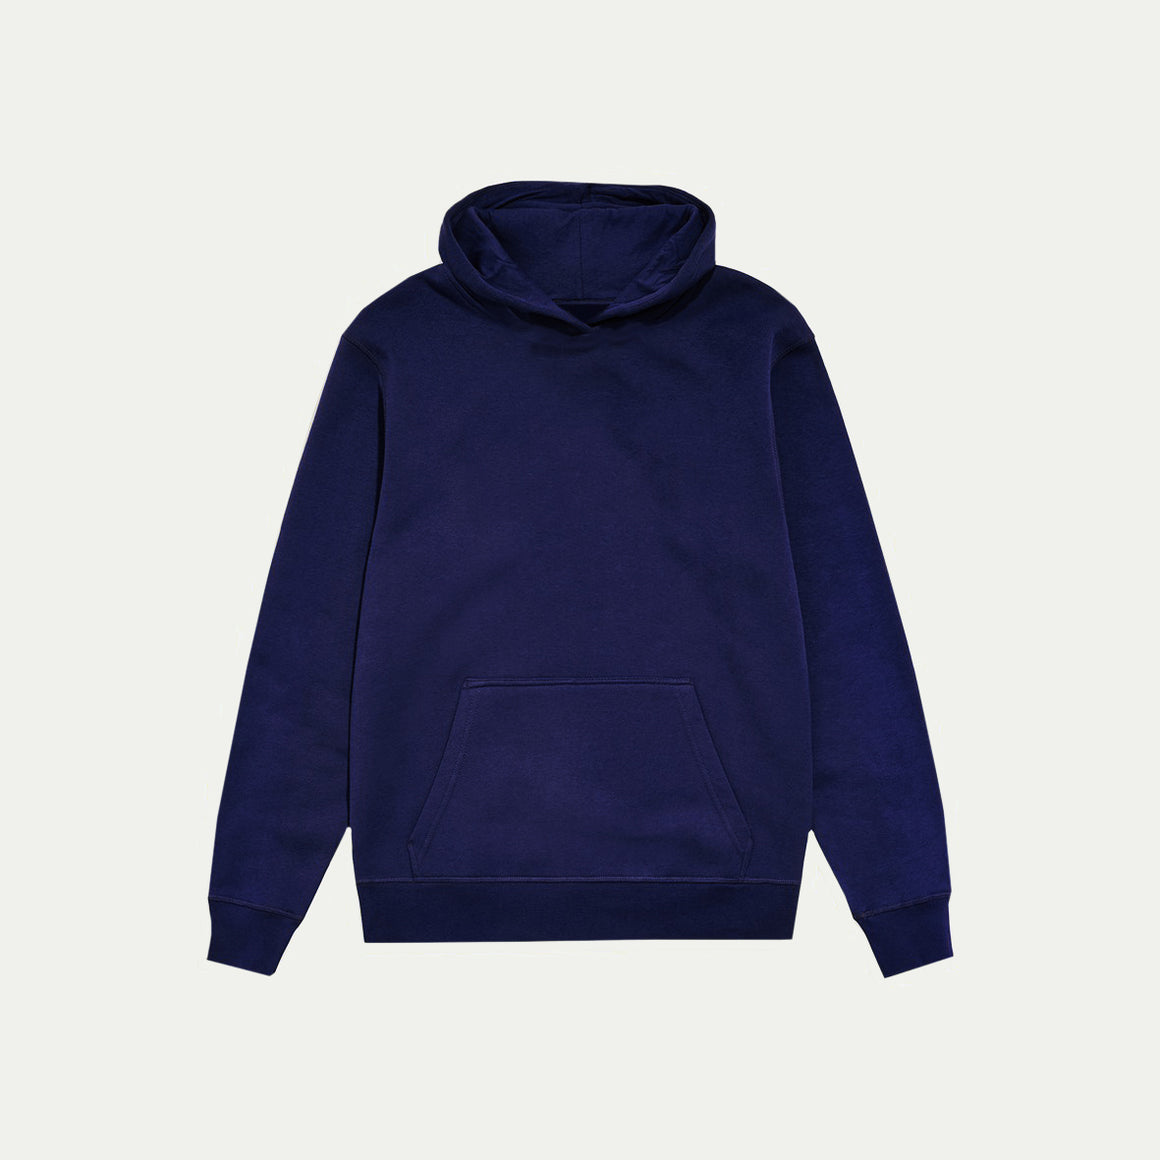 UNBRANDED ESSENTIAL PULLOVER HOODY | DENIM NAVY BLUE